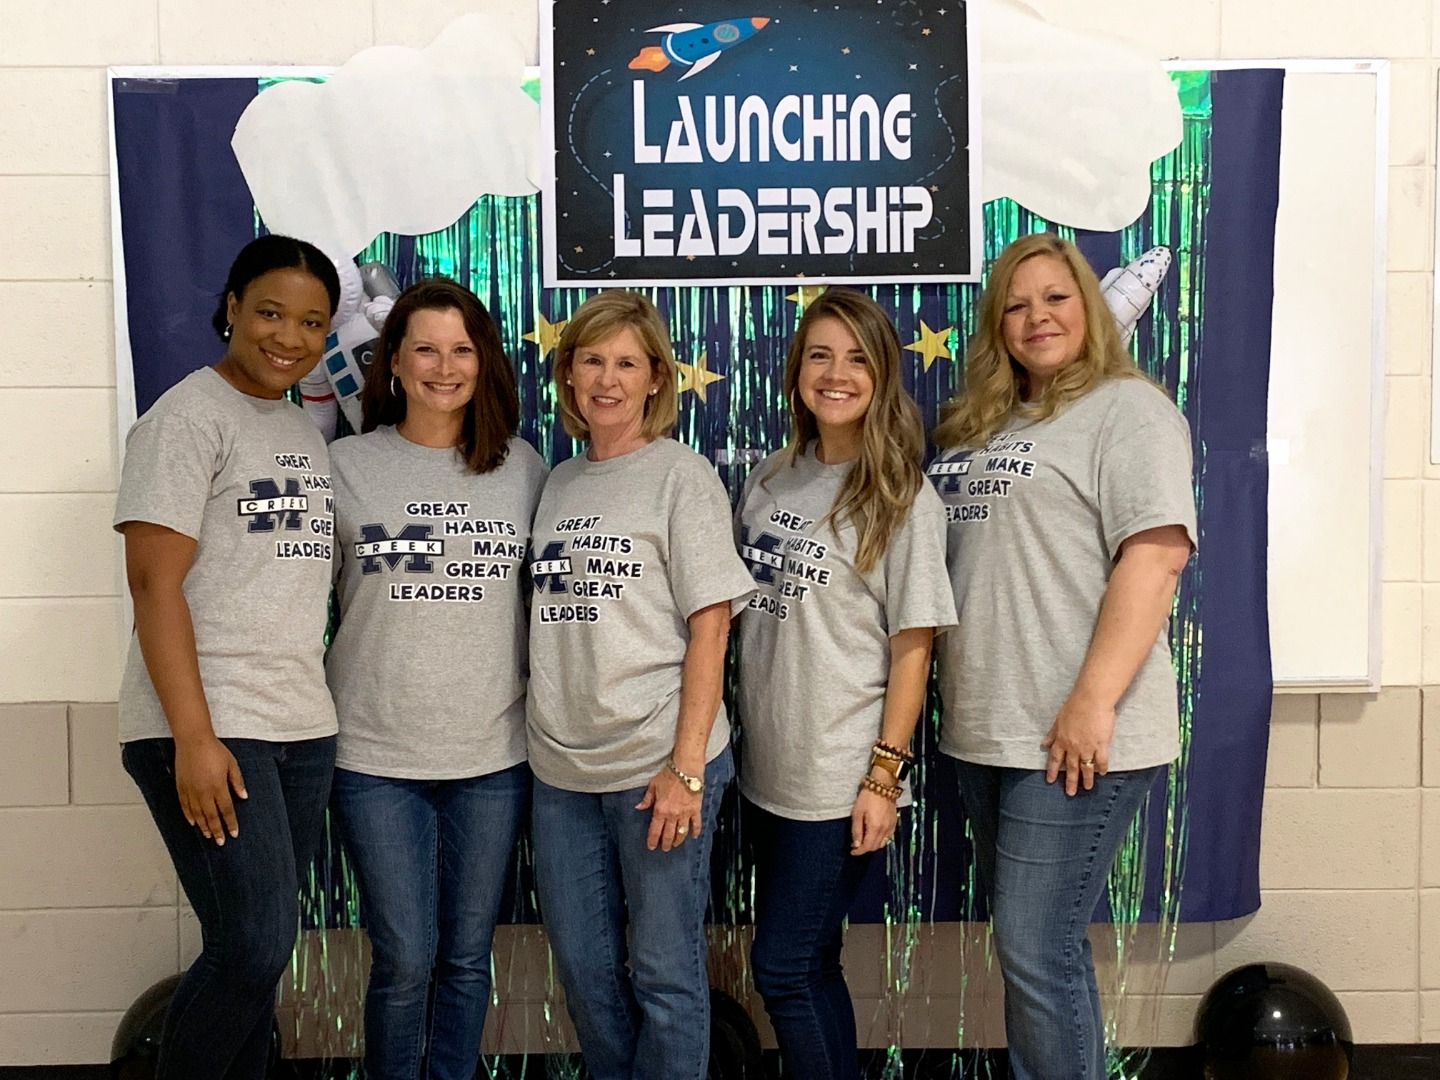 Working to launch leaders